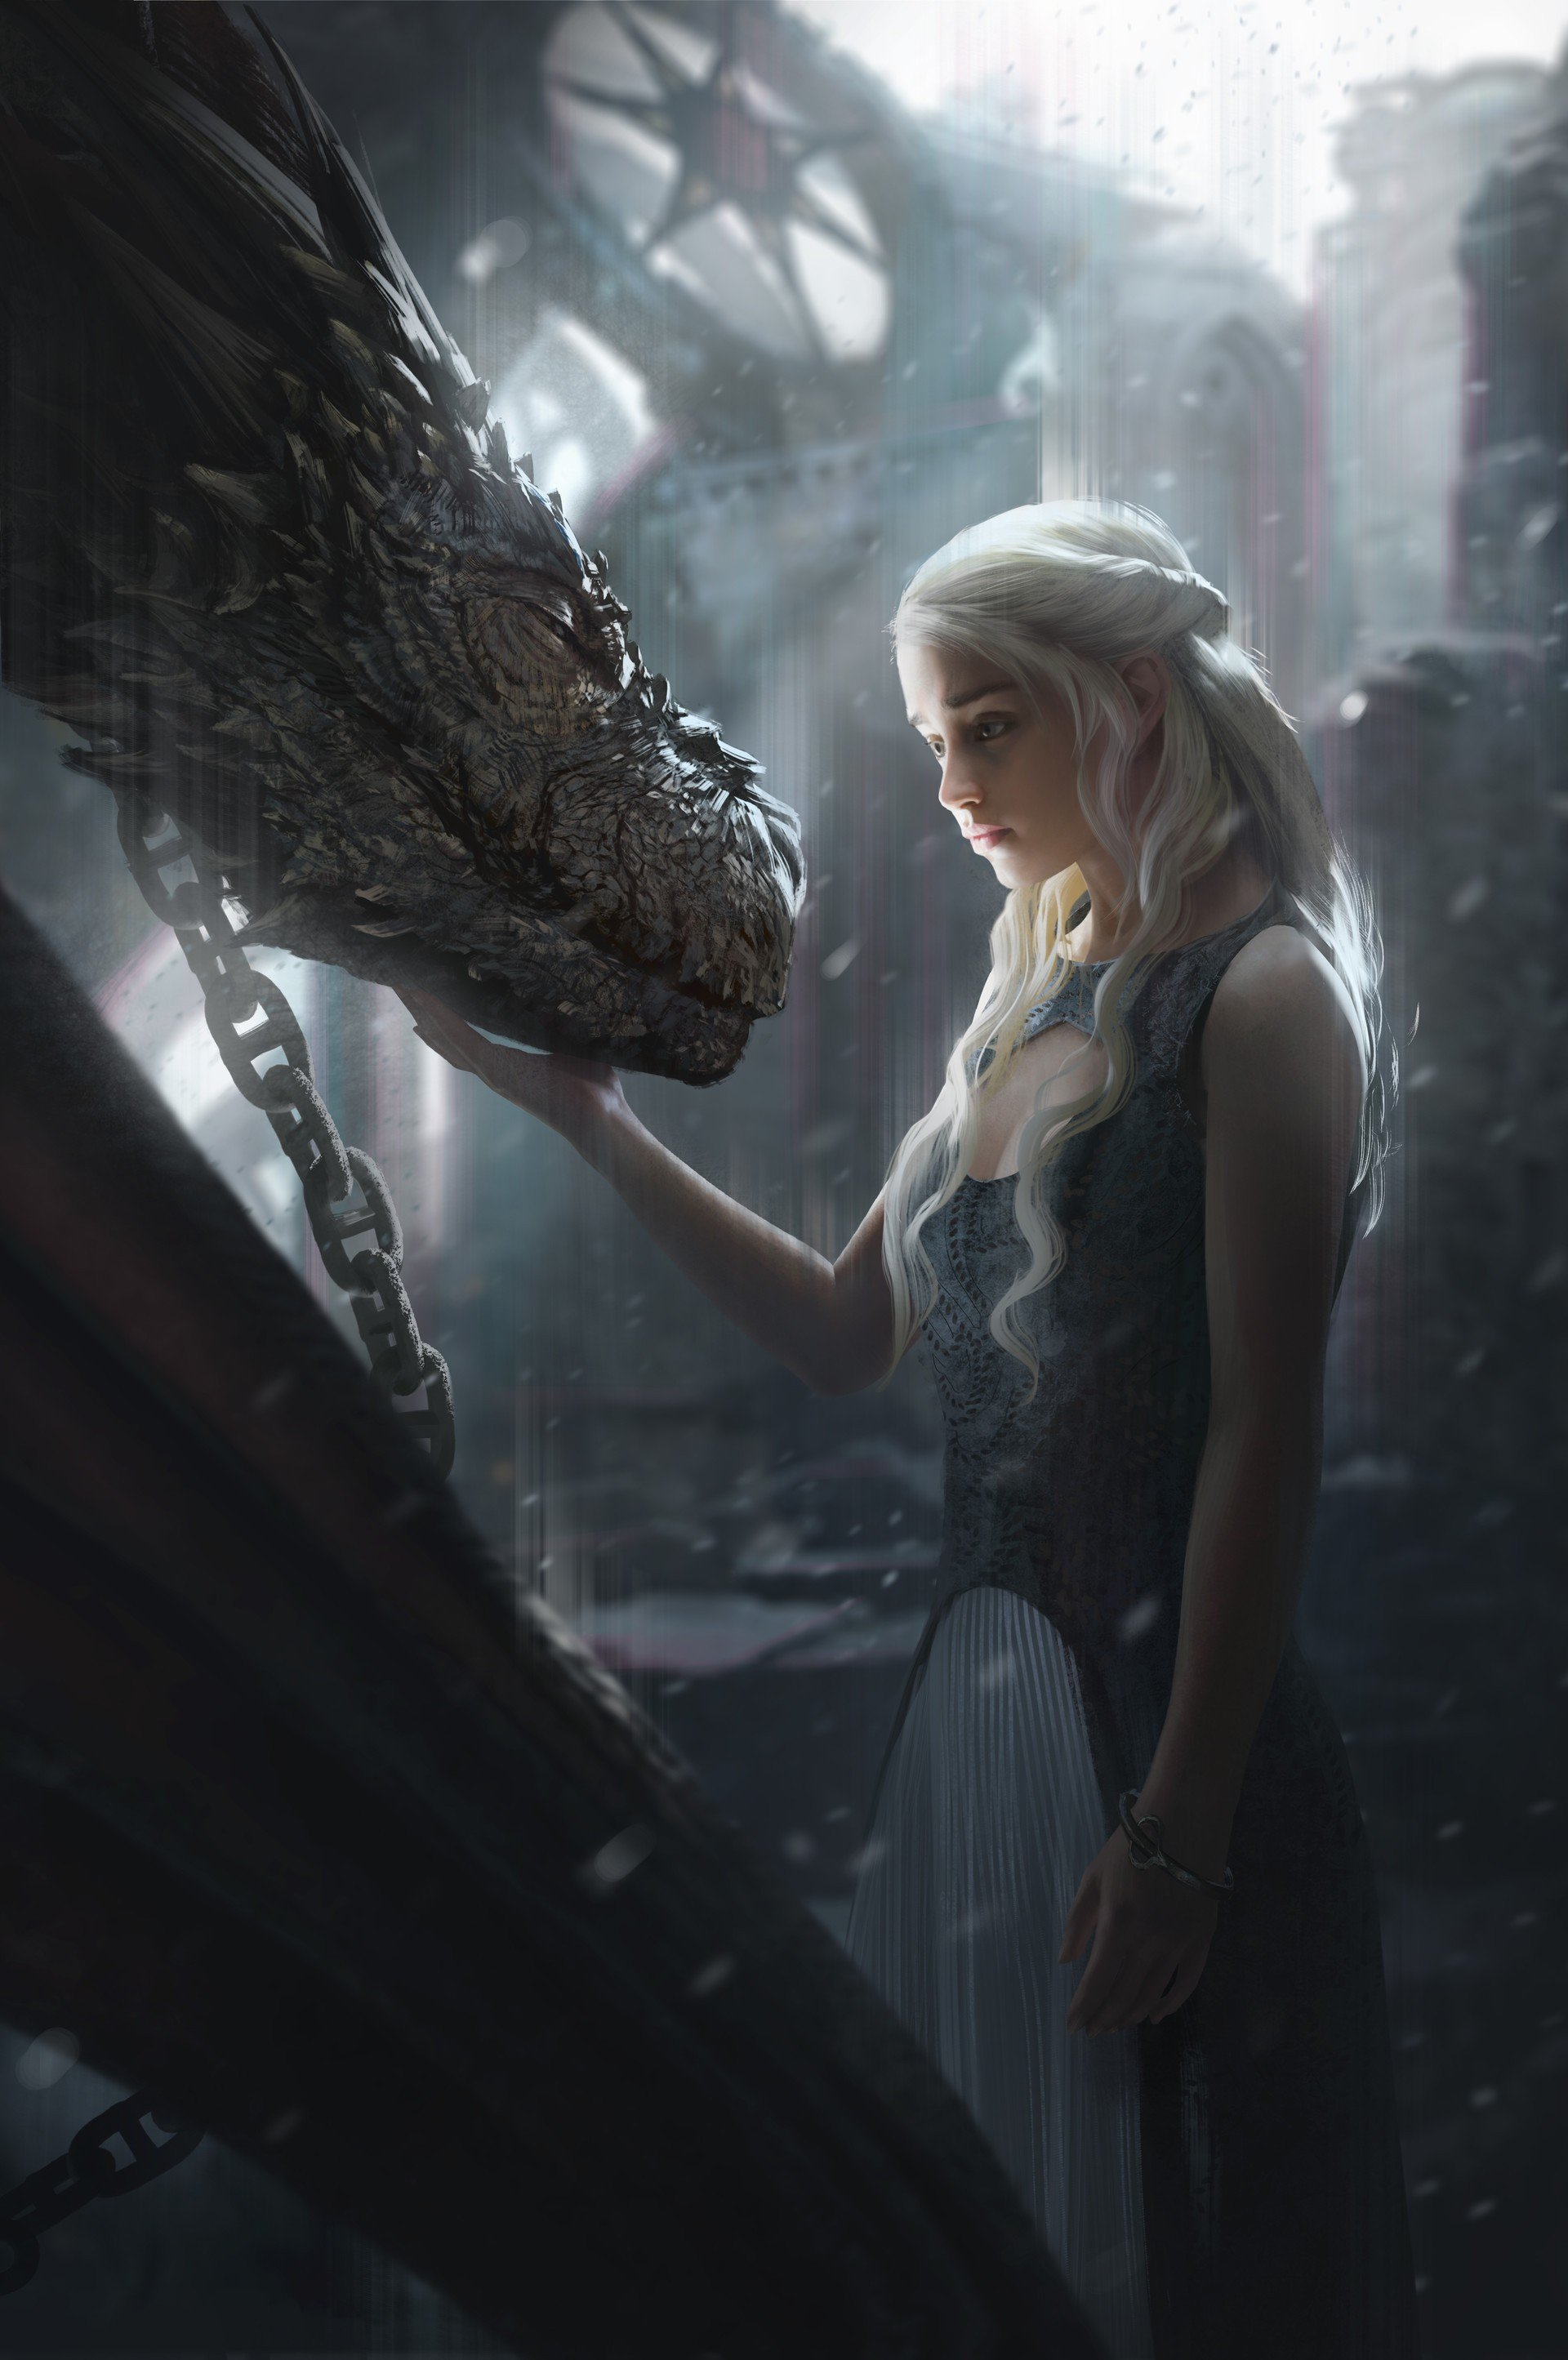 4k Hd Wallpaper Of Game Of Thrones Season 8 Season 7